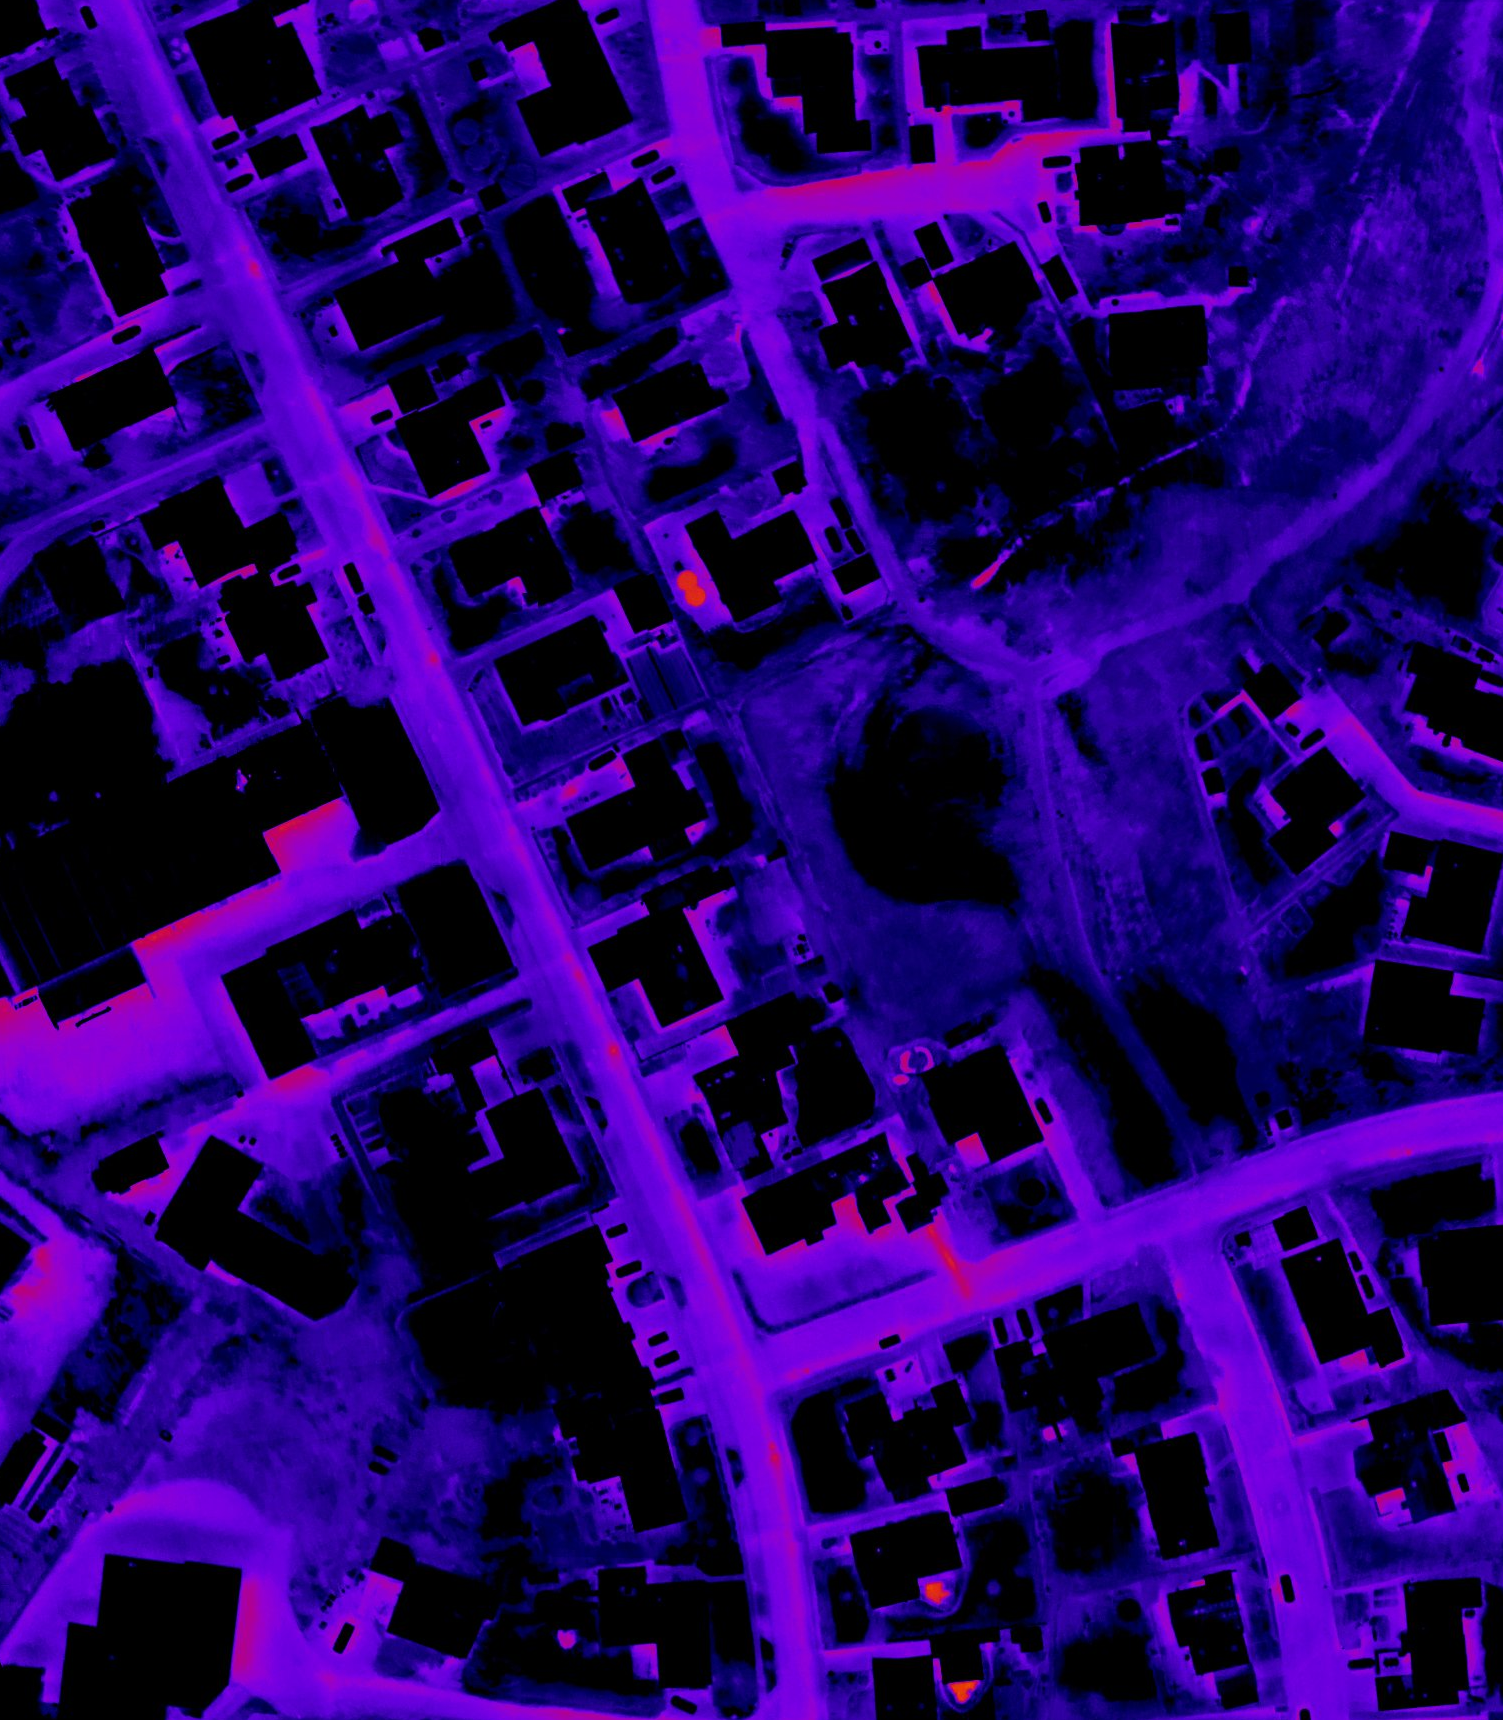 Drone Thermal Mapping with ThermalCapture and Icaros